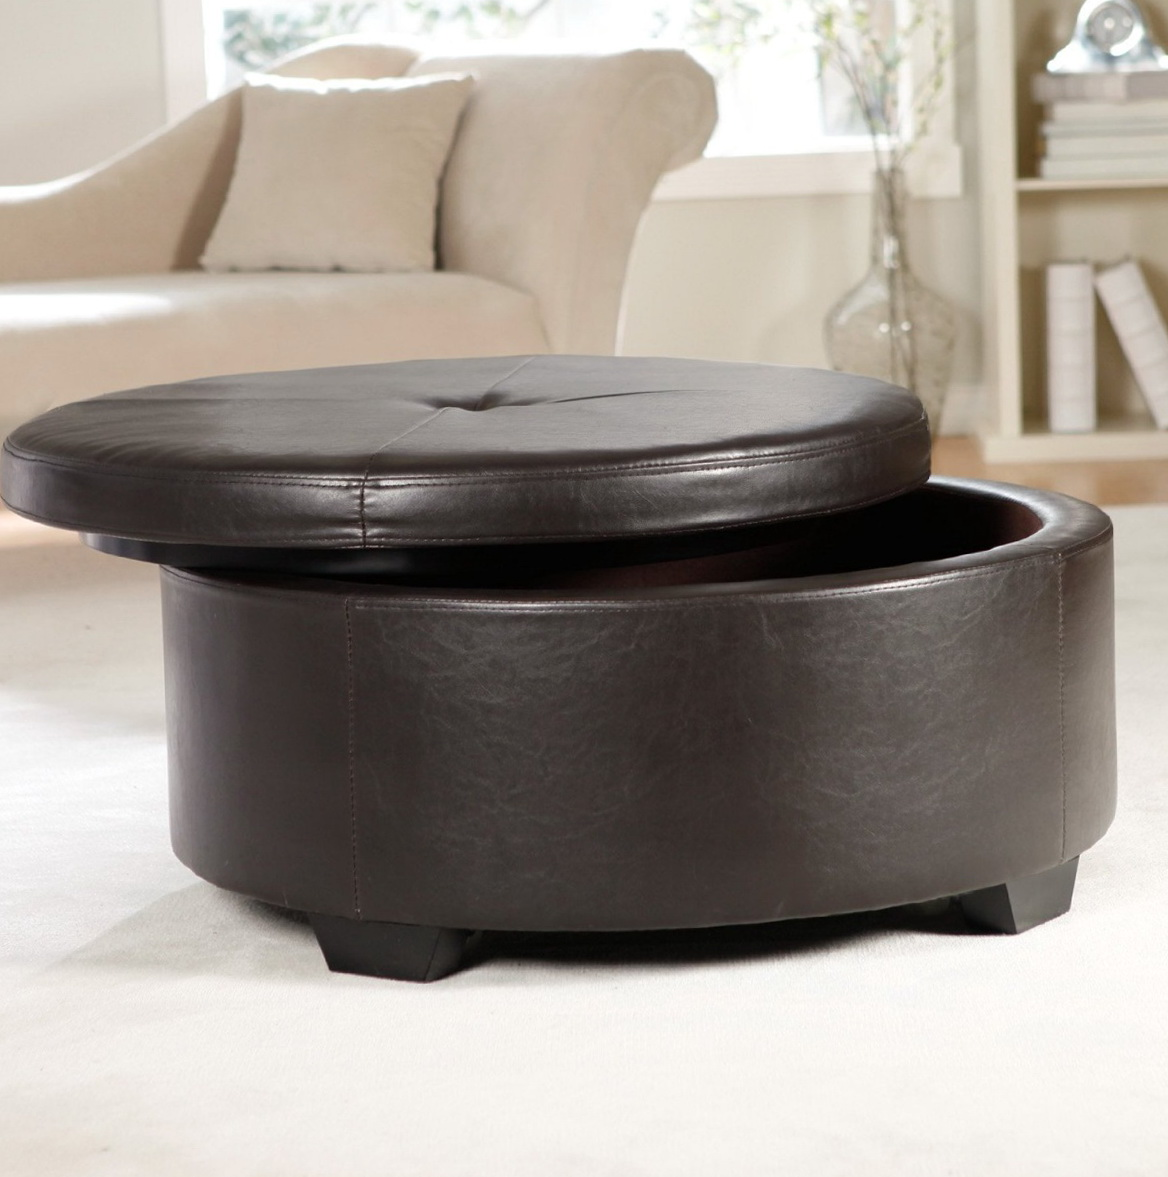 Large round ottoman coffee table home design ideas Large ottoman coffee table